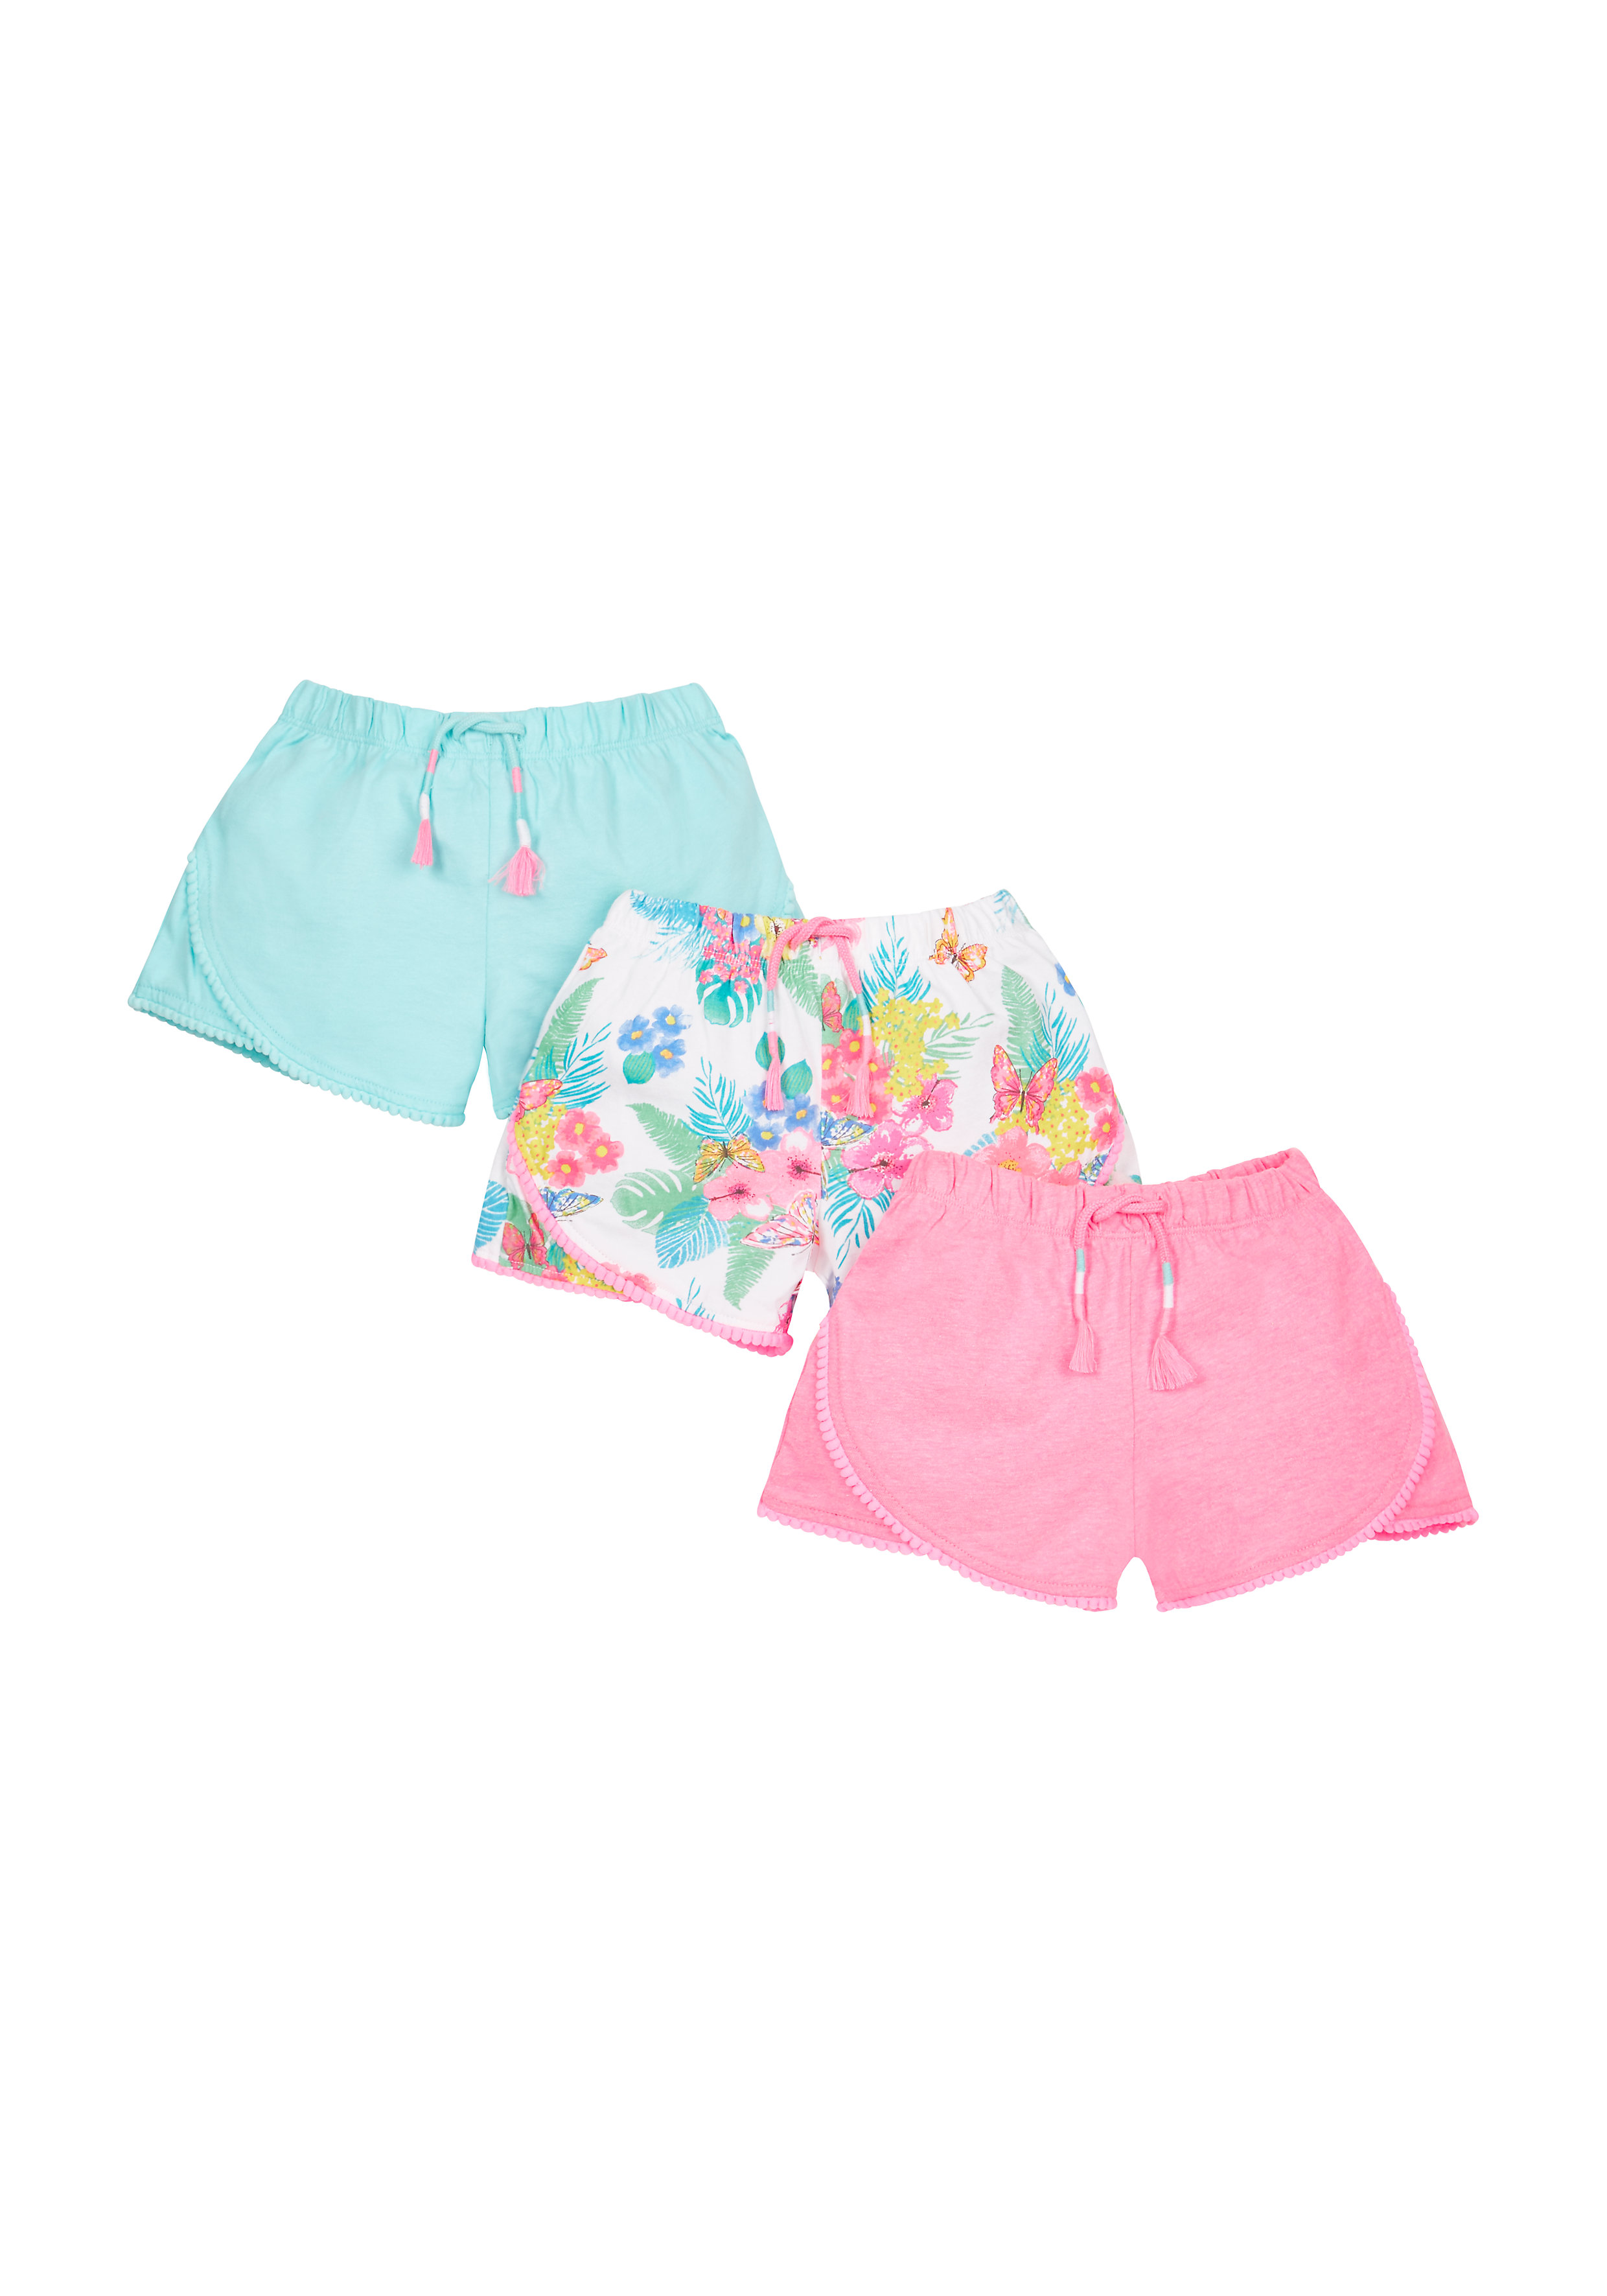 Mothercare | Girls Floral Jersey Shorts - Pack Of 3 - Multicolor